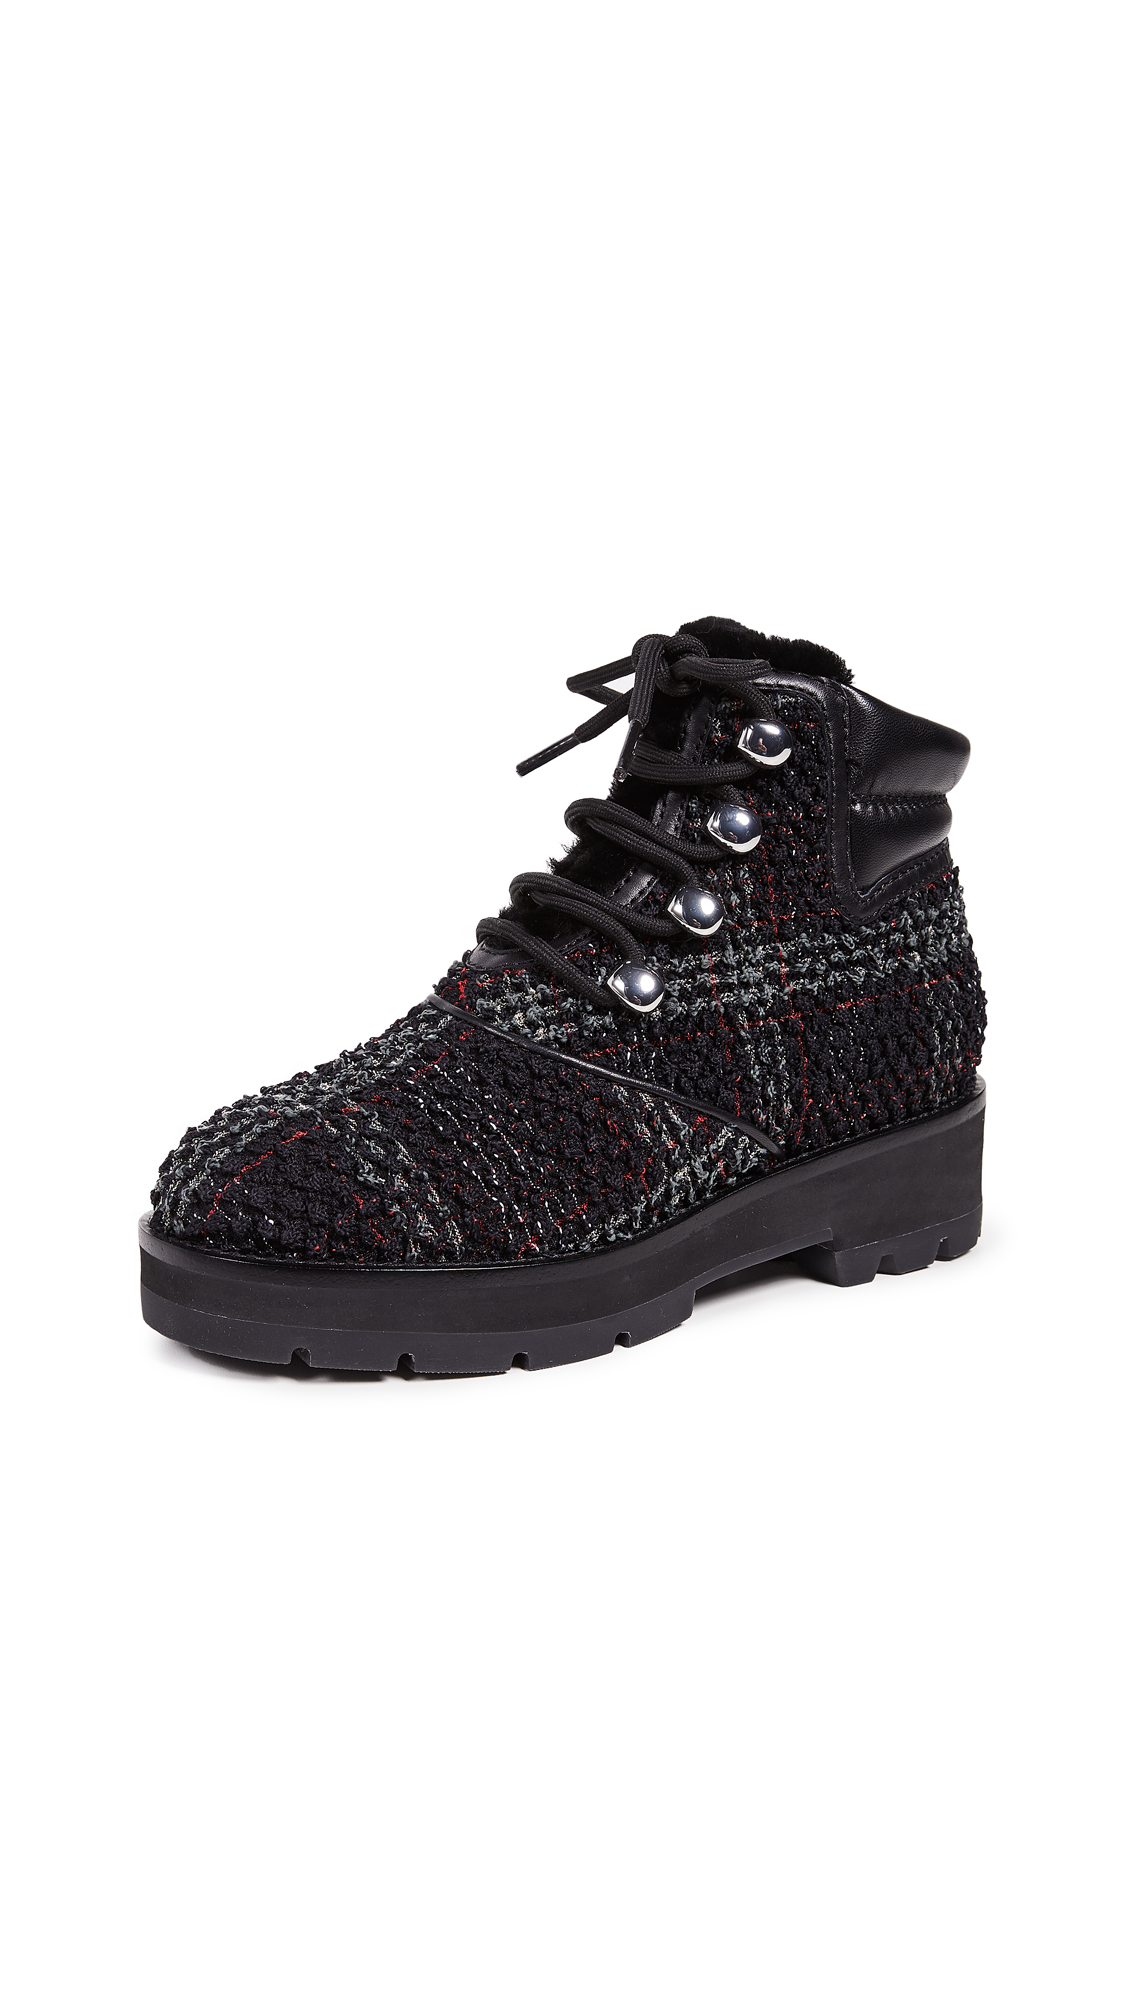 3.1 Phillip Lim Dylan Lace Up Hiking Boots - Black/Green/Red Check